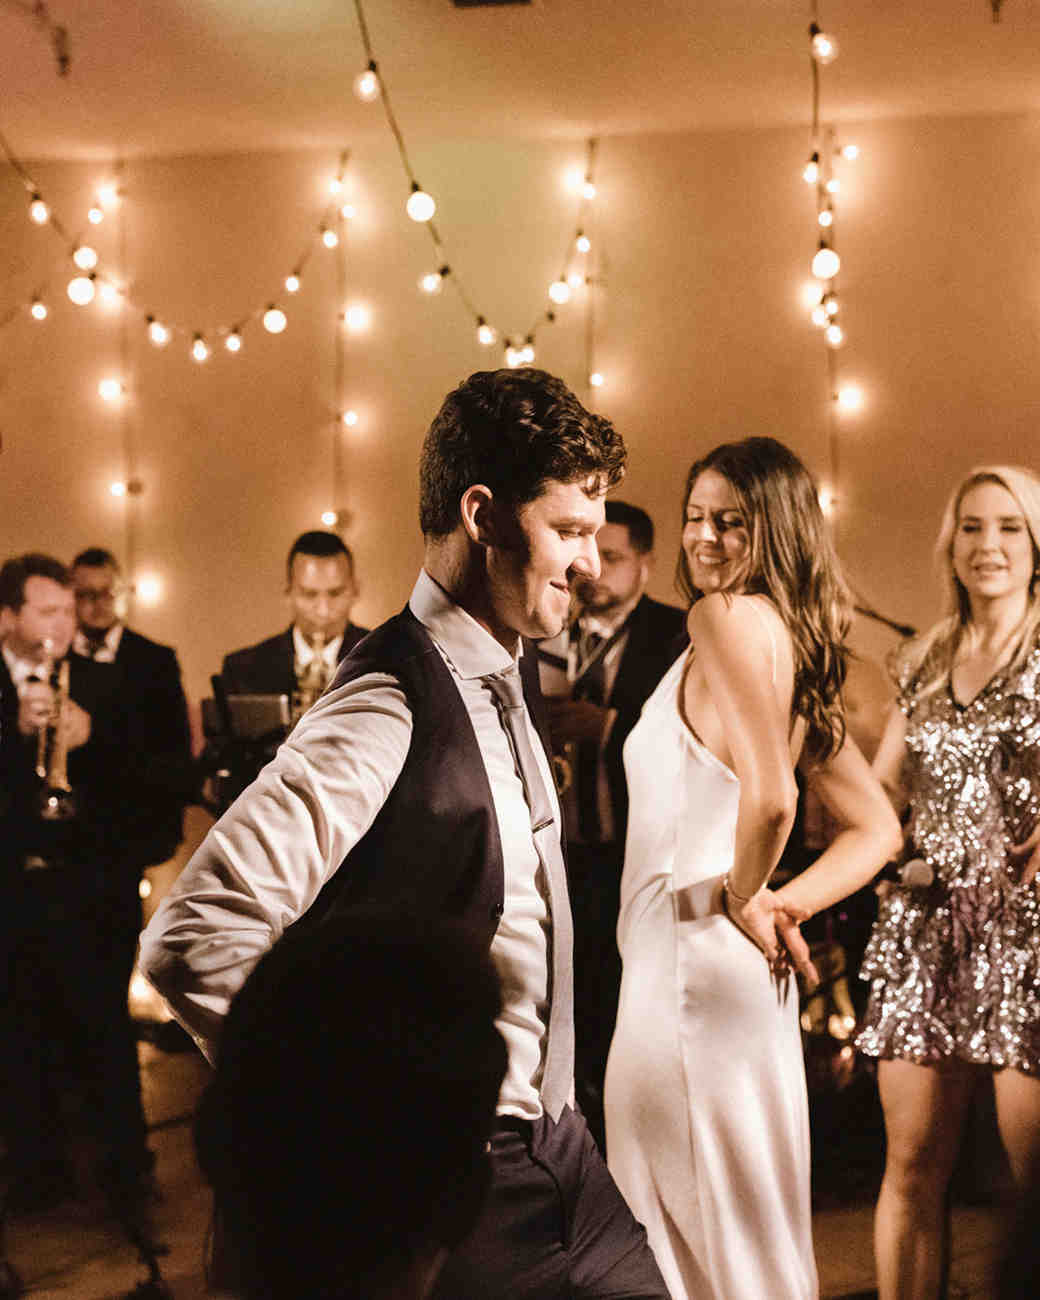 guests watch bride and groom share first dance